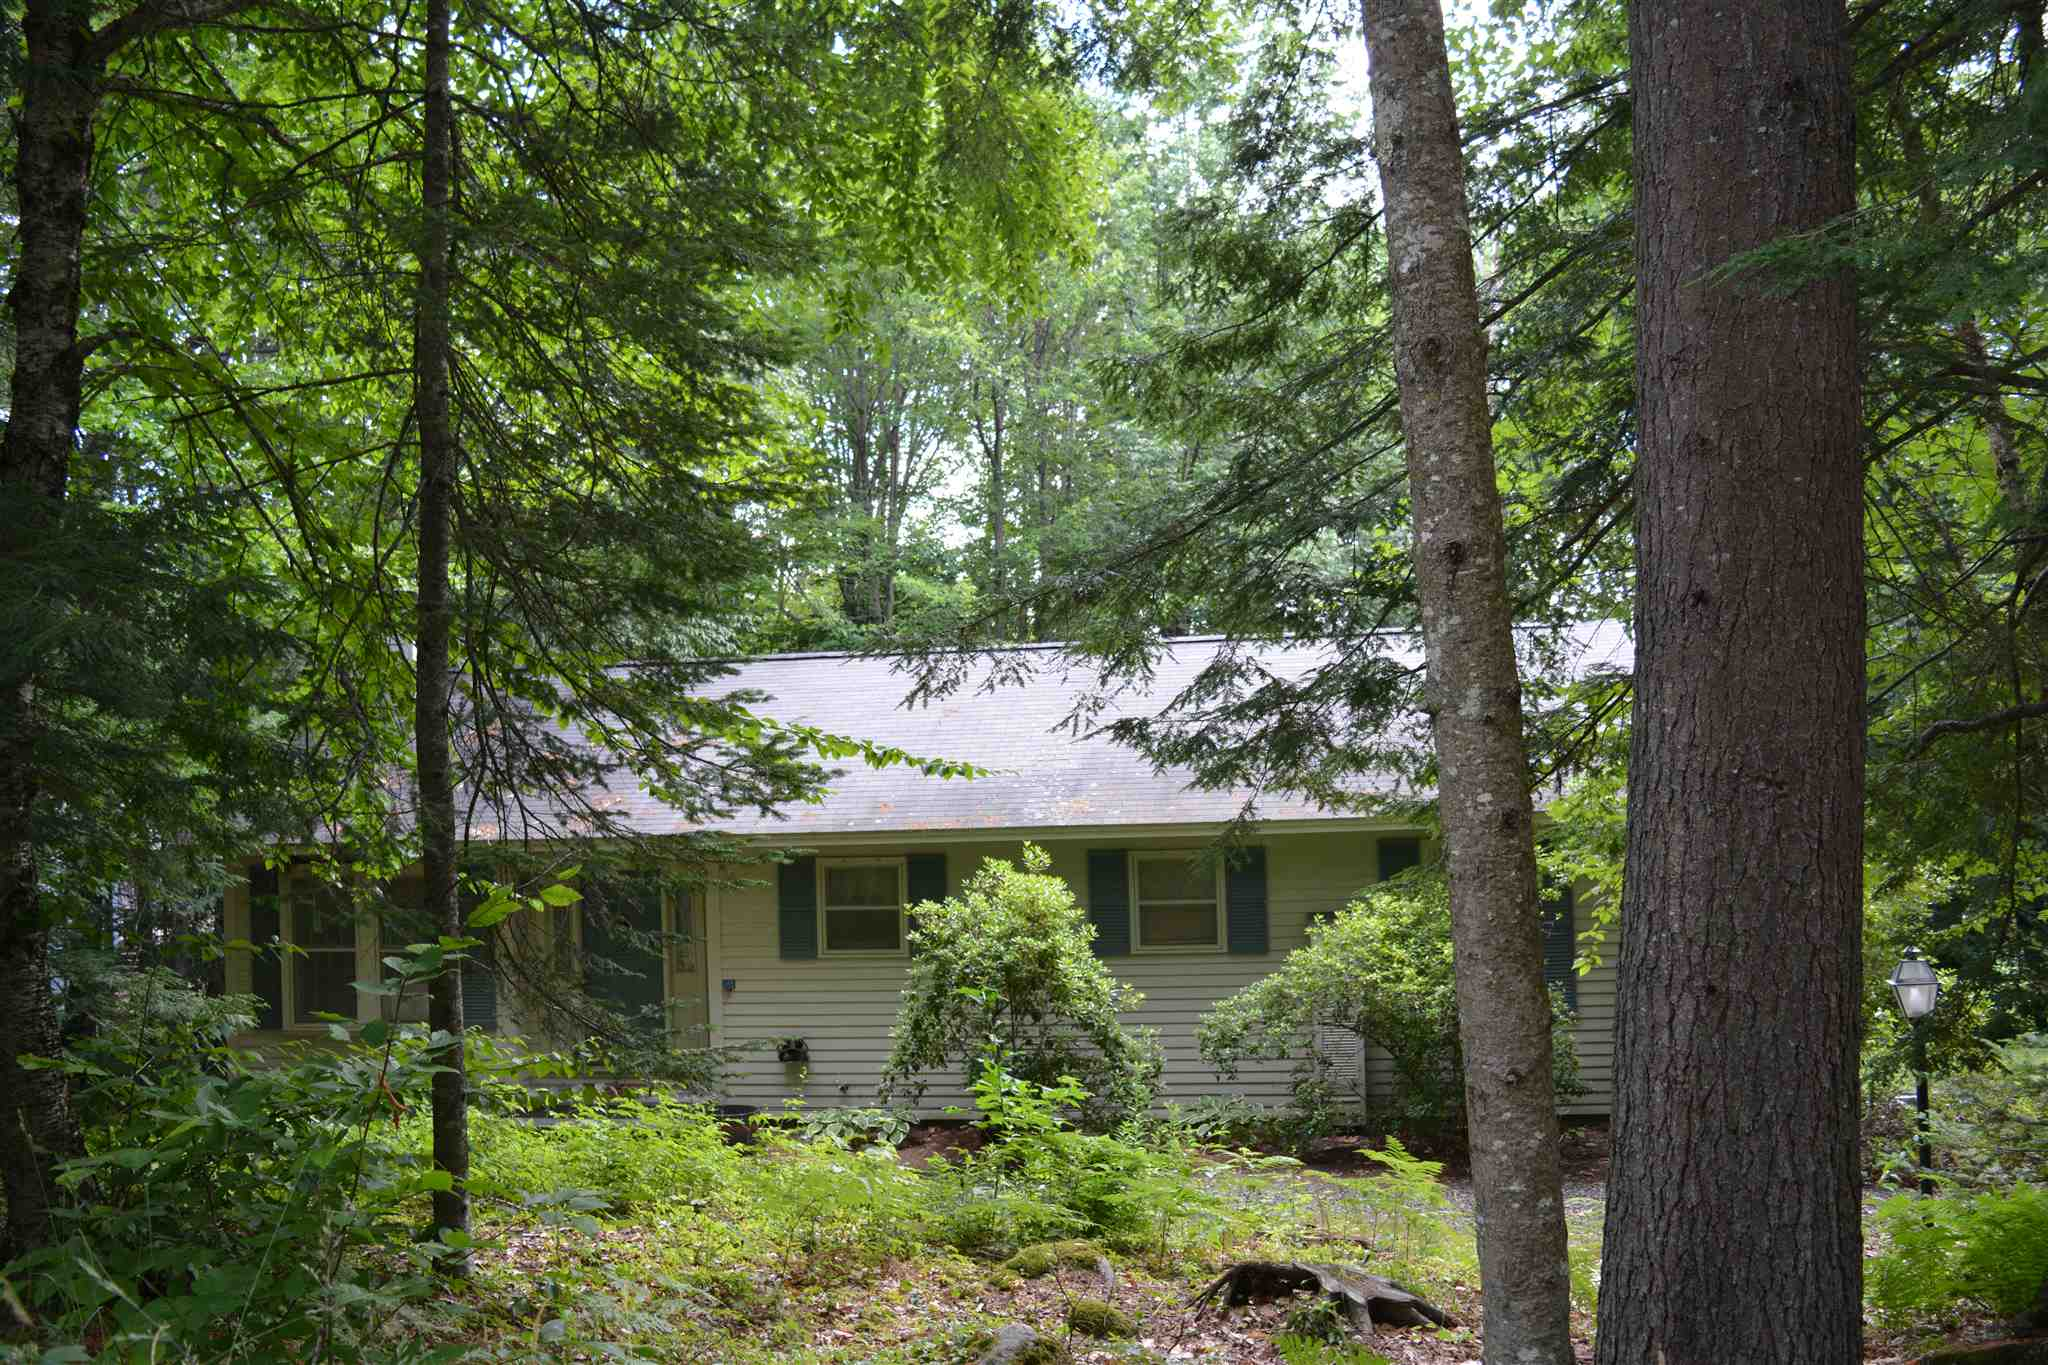 MLS 4816780: 104 Greensward Drive, Grantham NH